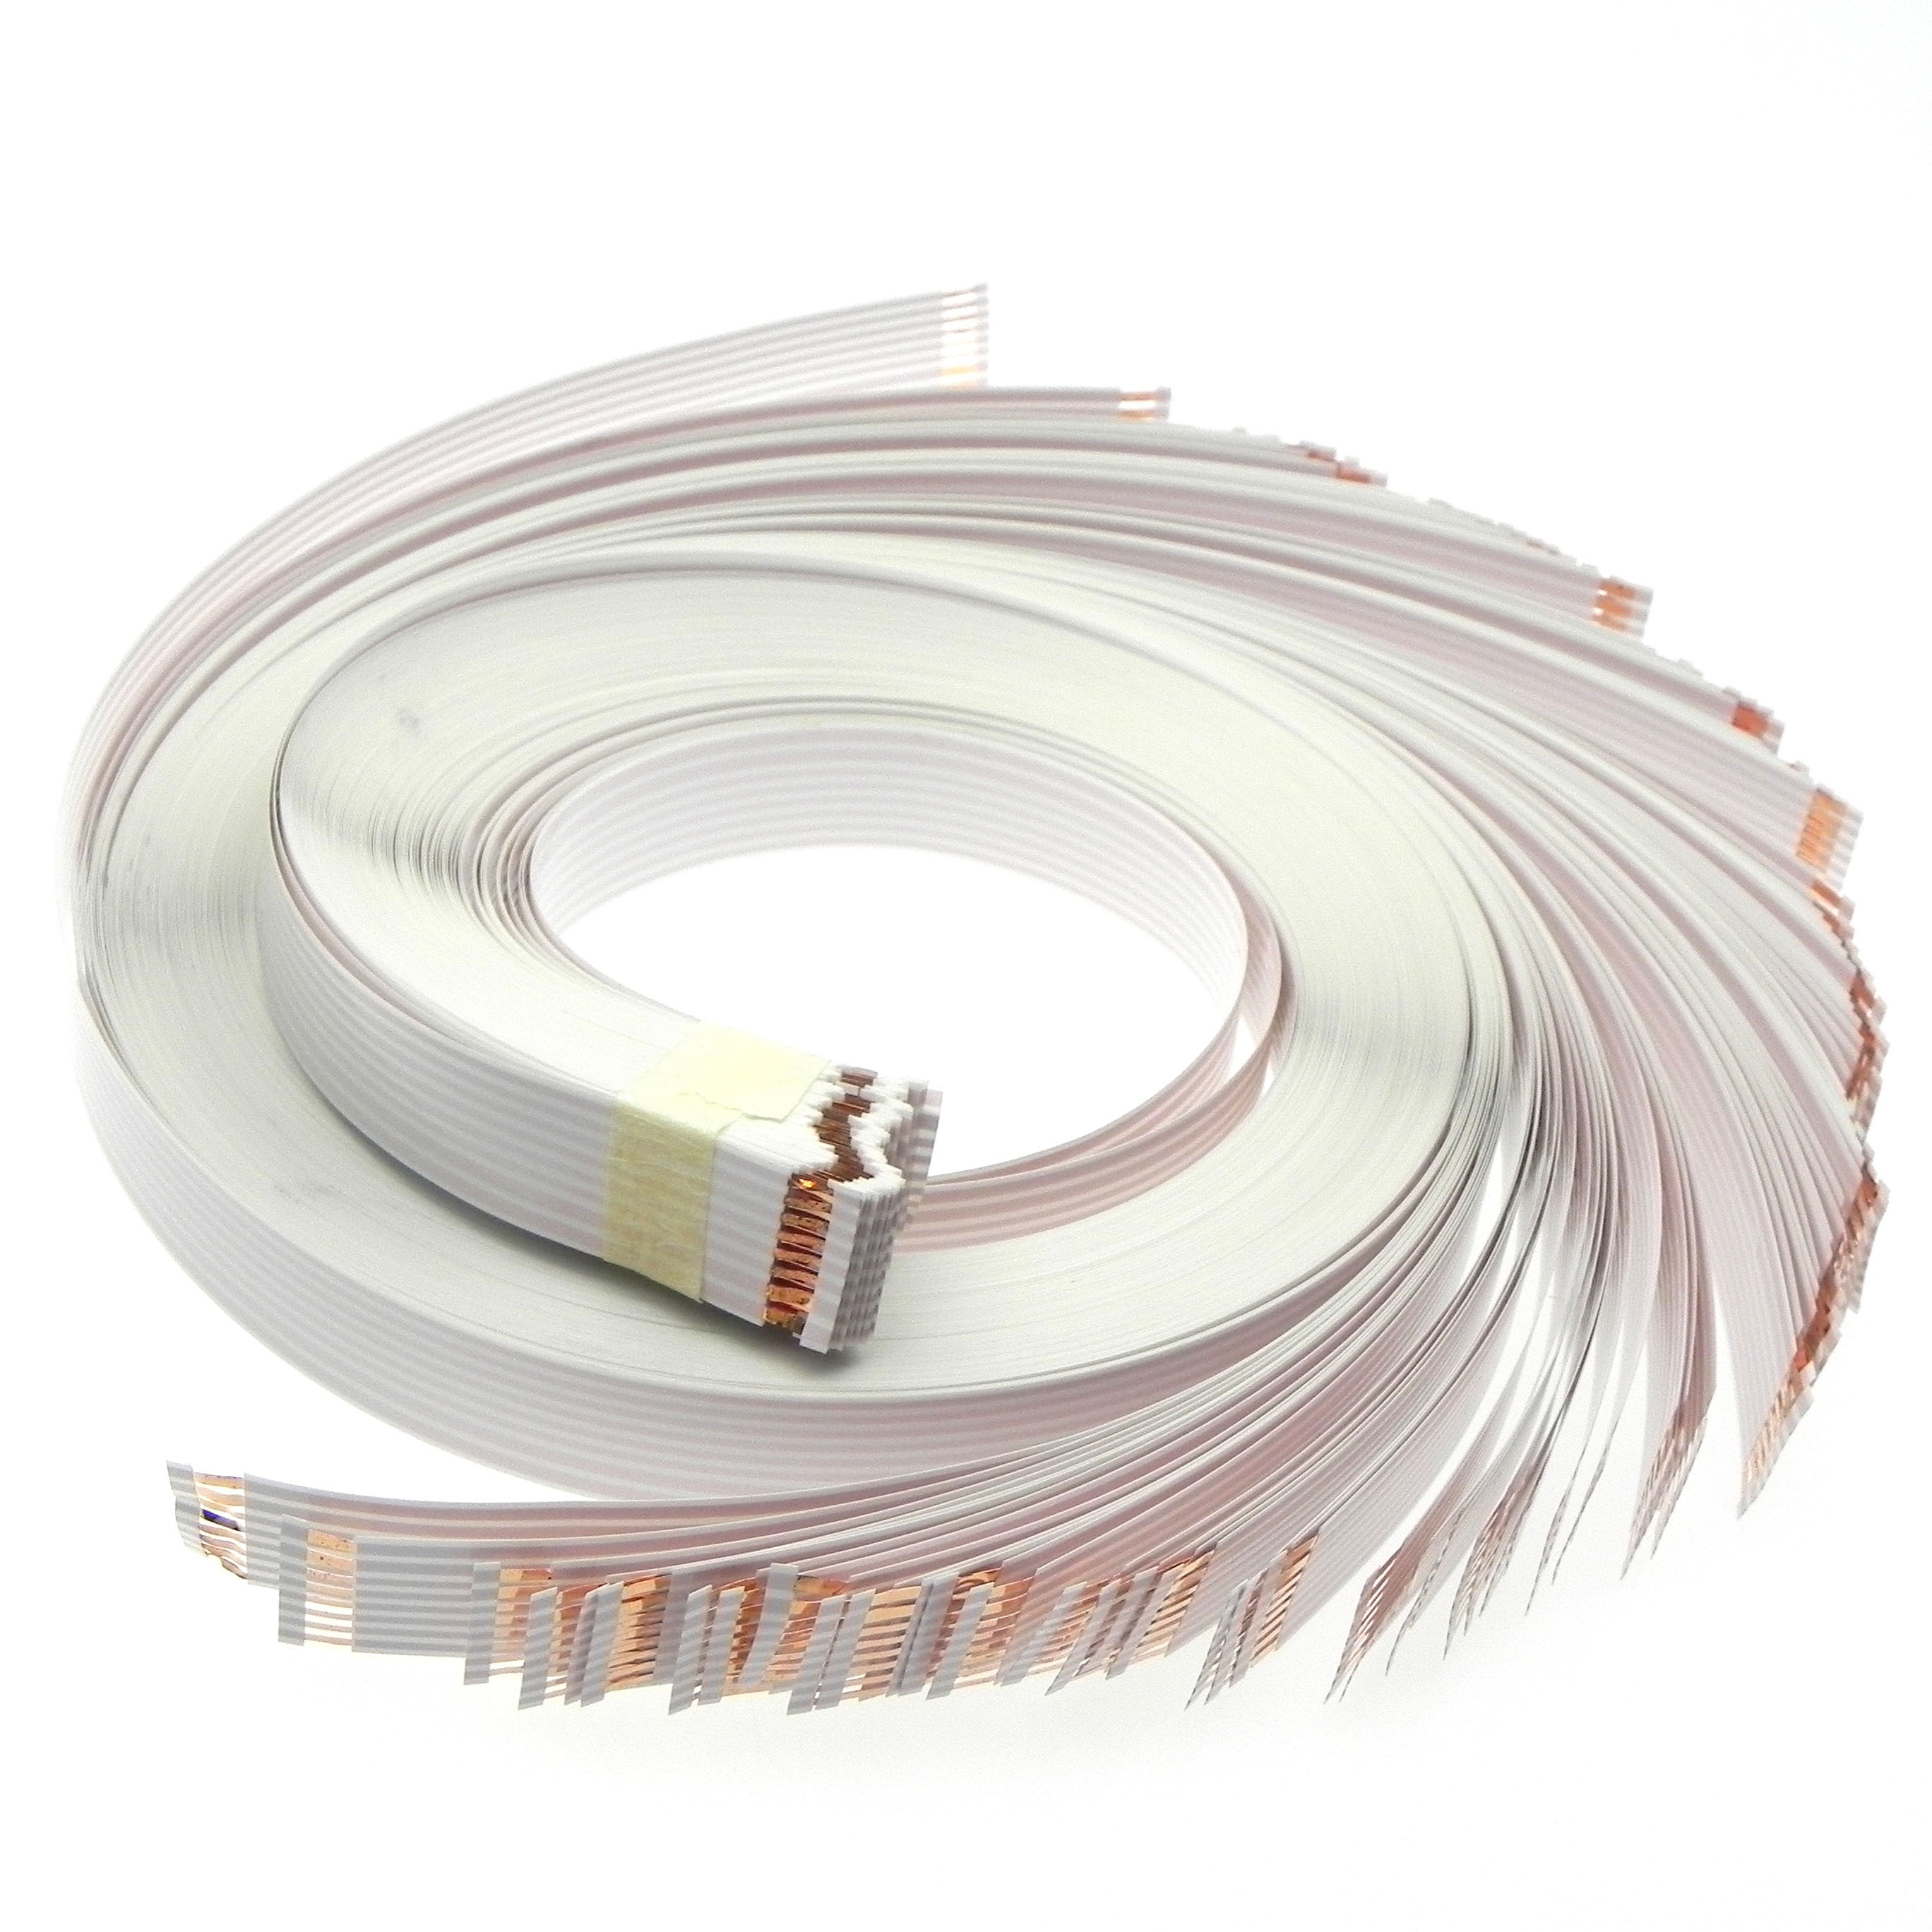 Airbag cable